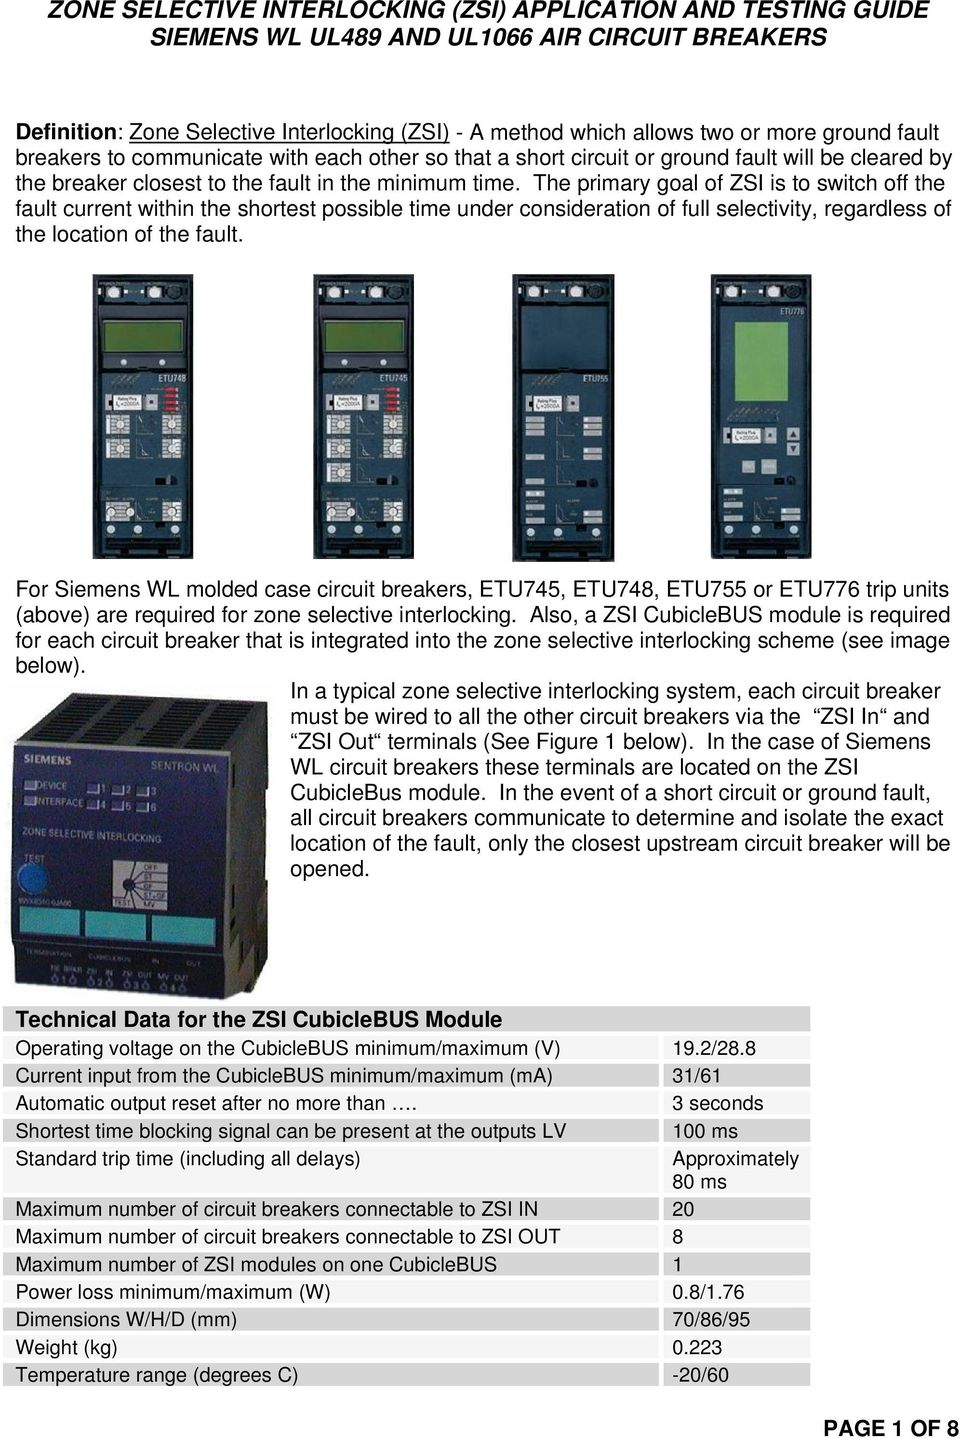 Zone Selective Interlocking Zsi Application And Testing Guide Above Short Circuit To Ground The Primary Goal Of Is Switch Off Fault Current Within Shortest Possible